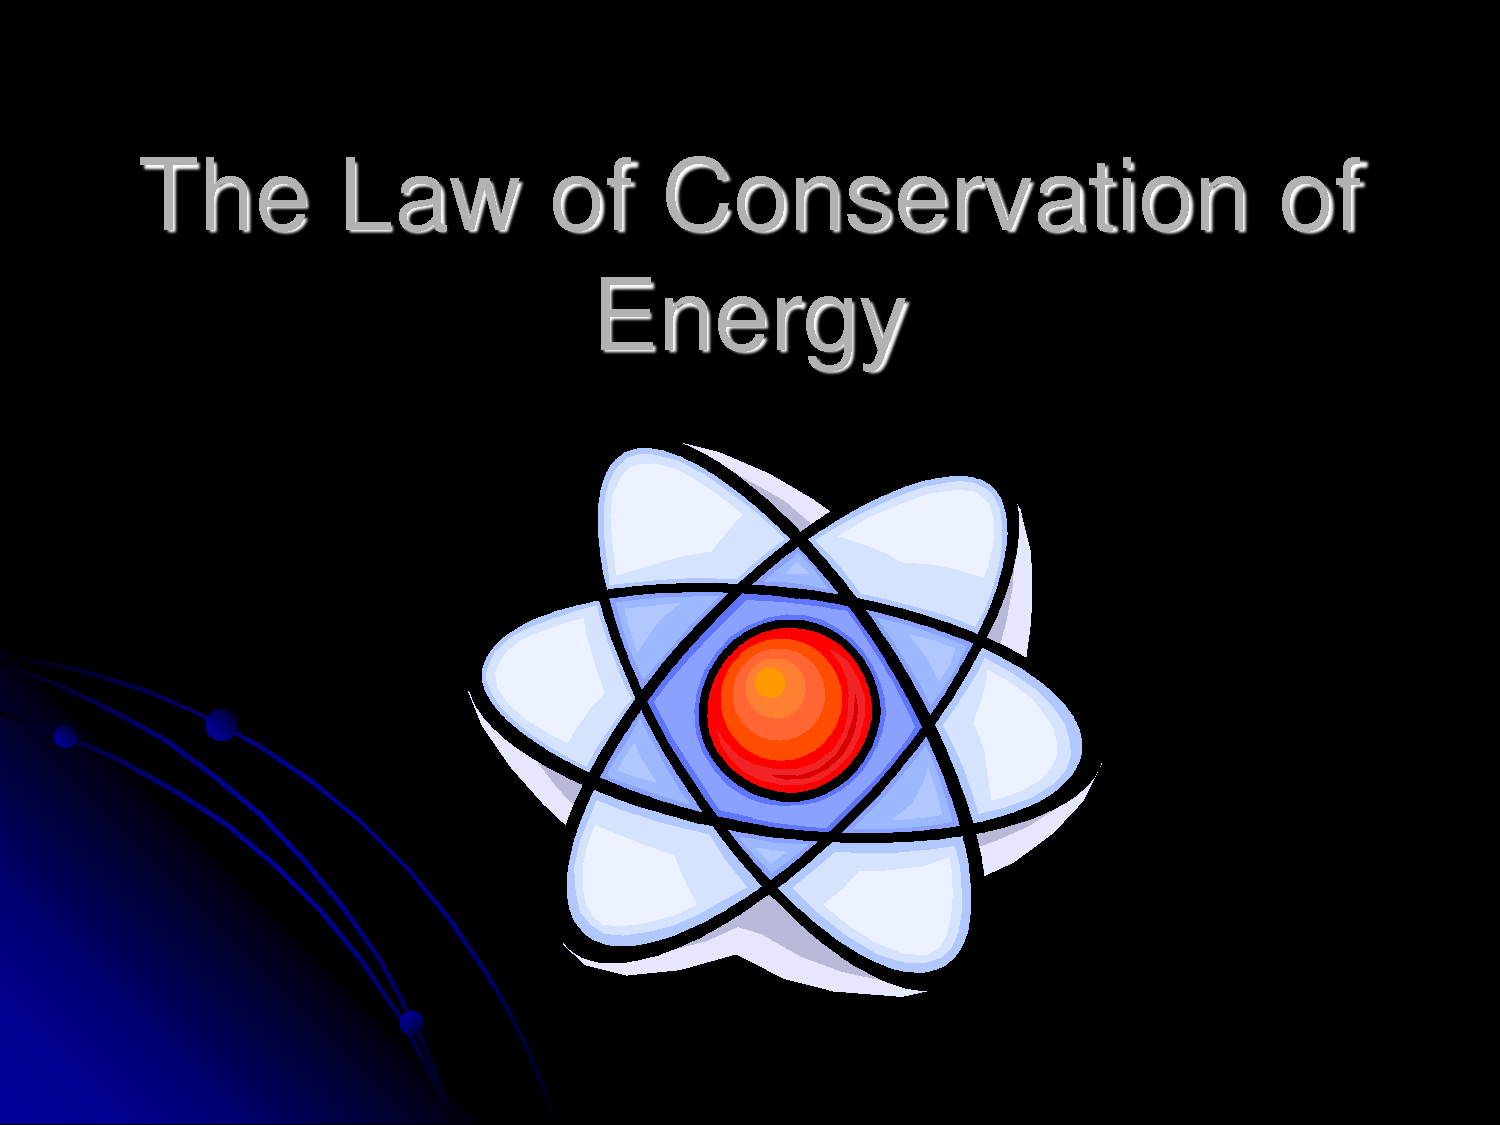 Day 15 - Conservation of Energy - Part 2 | Blogs of the ...